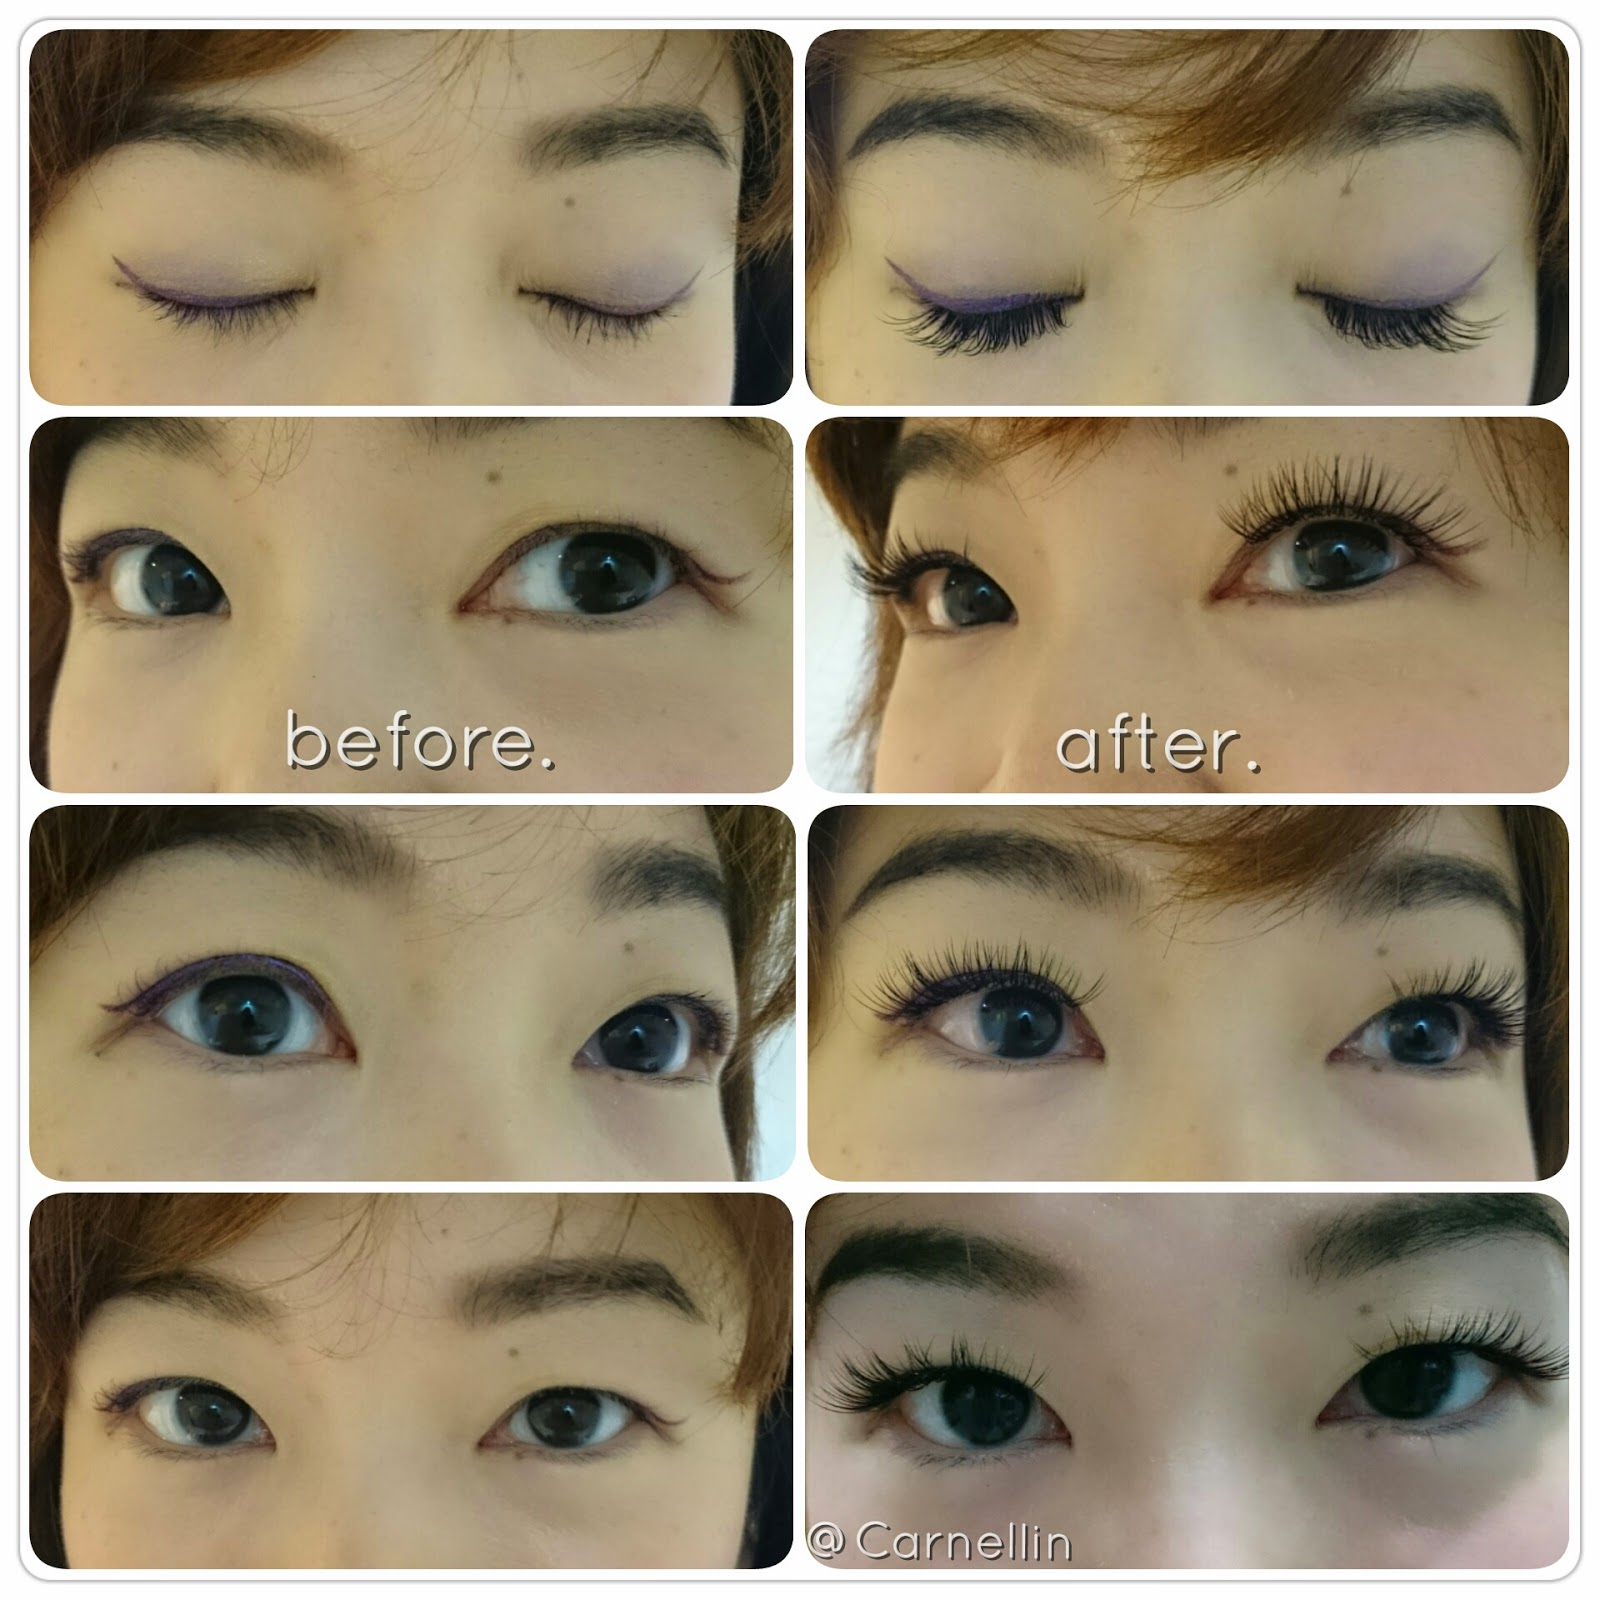 7bf89ff6015 I wish they also do a lower eyelash extension since the result is so good,  very comfortable, light and neat as well. I don't have to use a falsies now  for ...